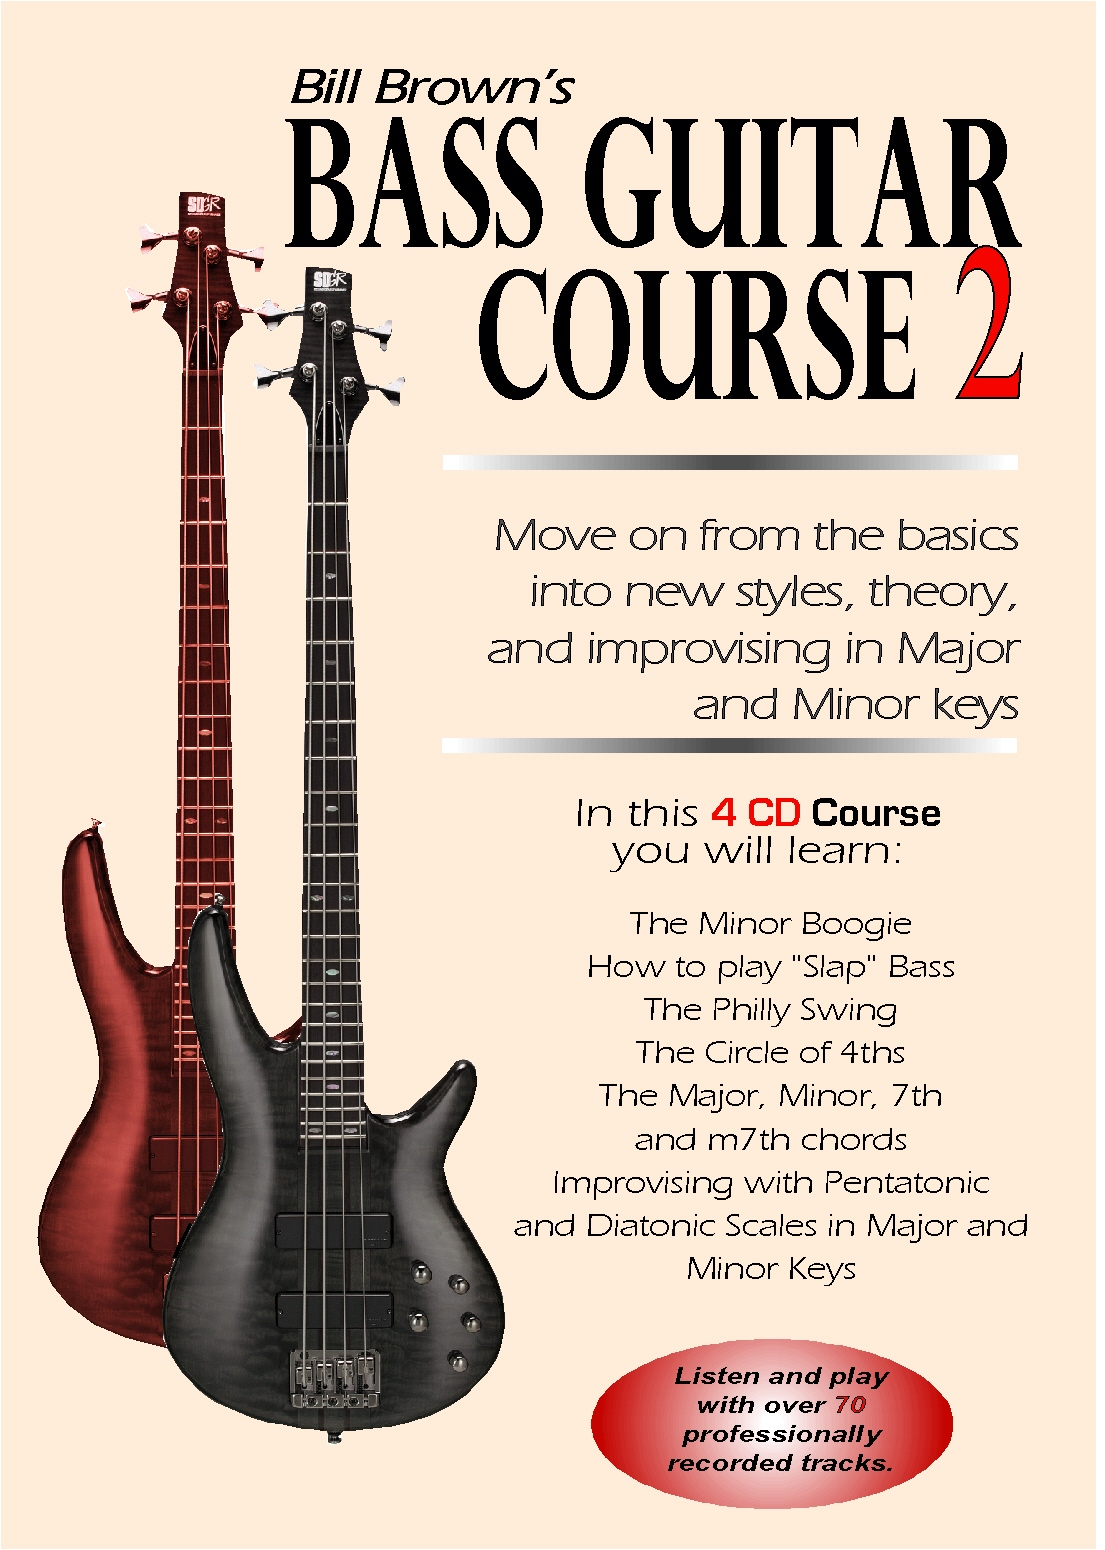 Bass Guitar Course 2